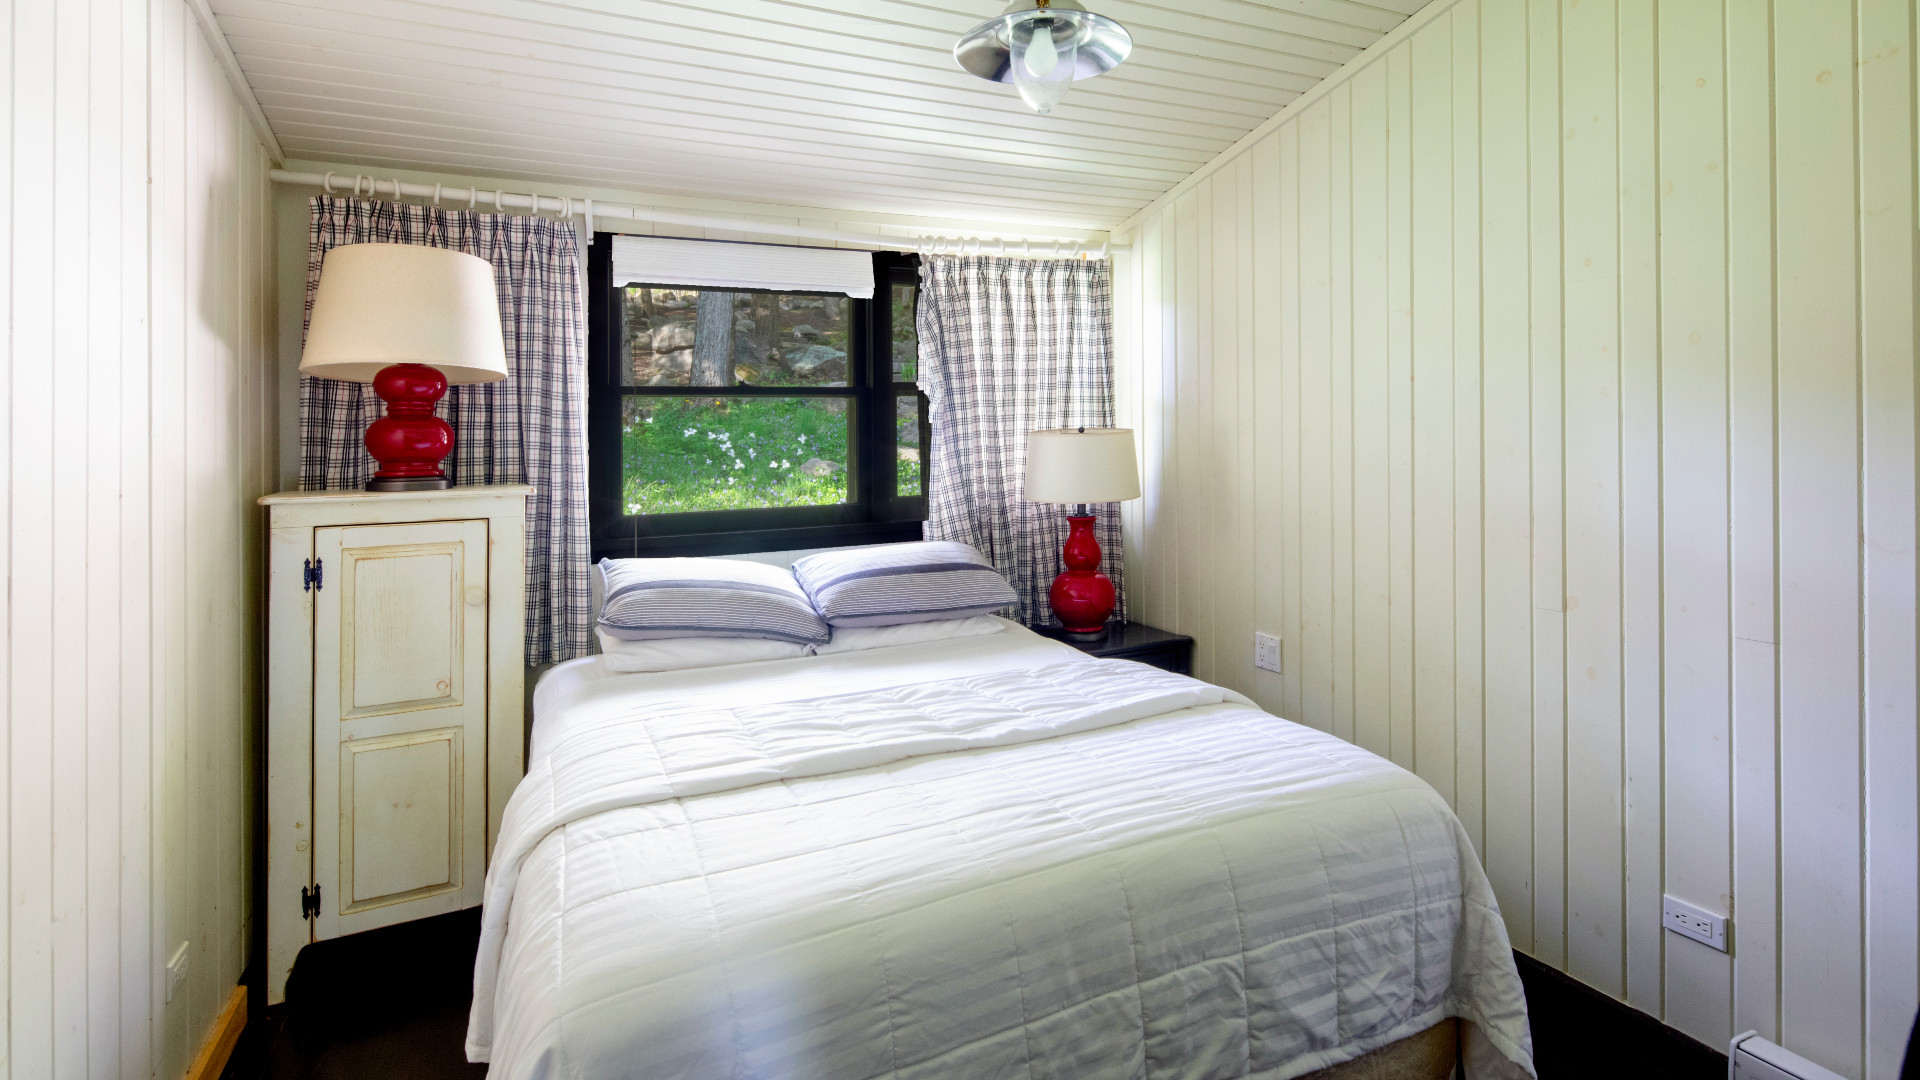 A photo of the other guesthouse bedroom.